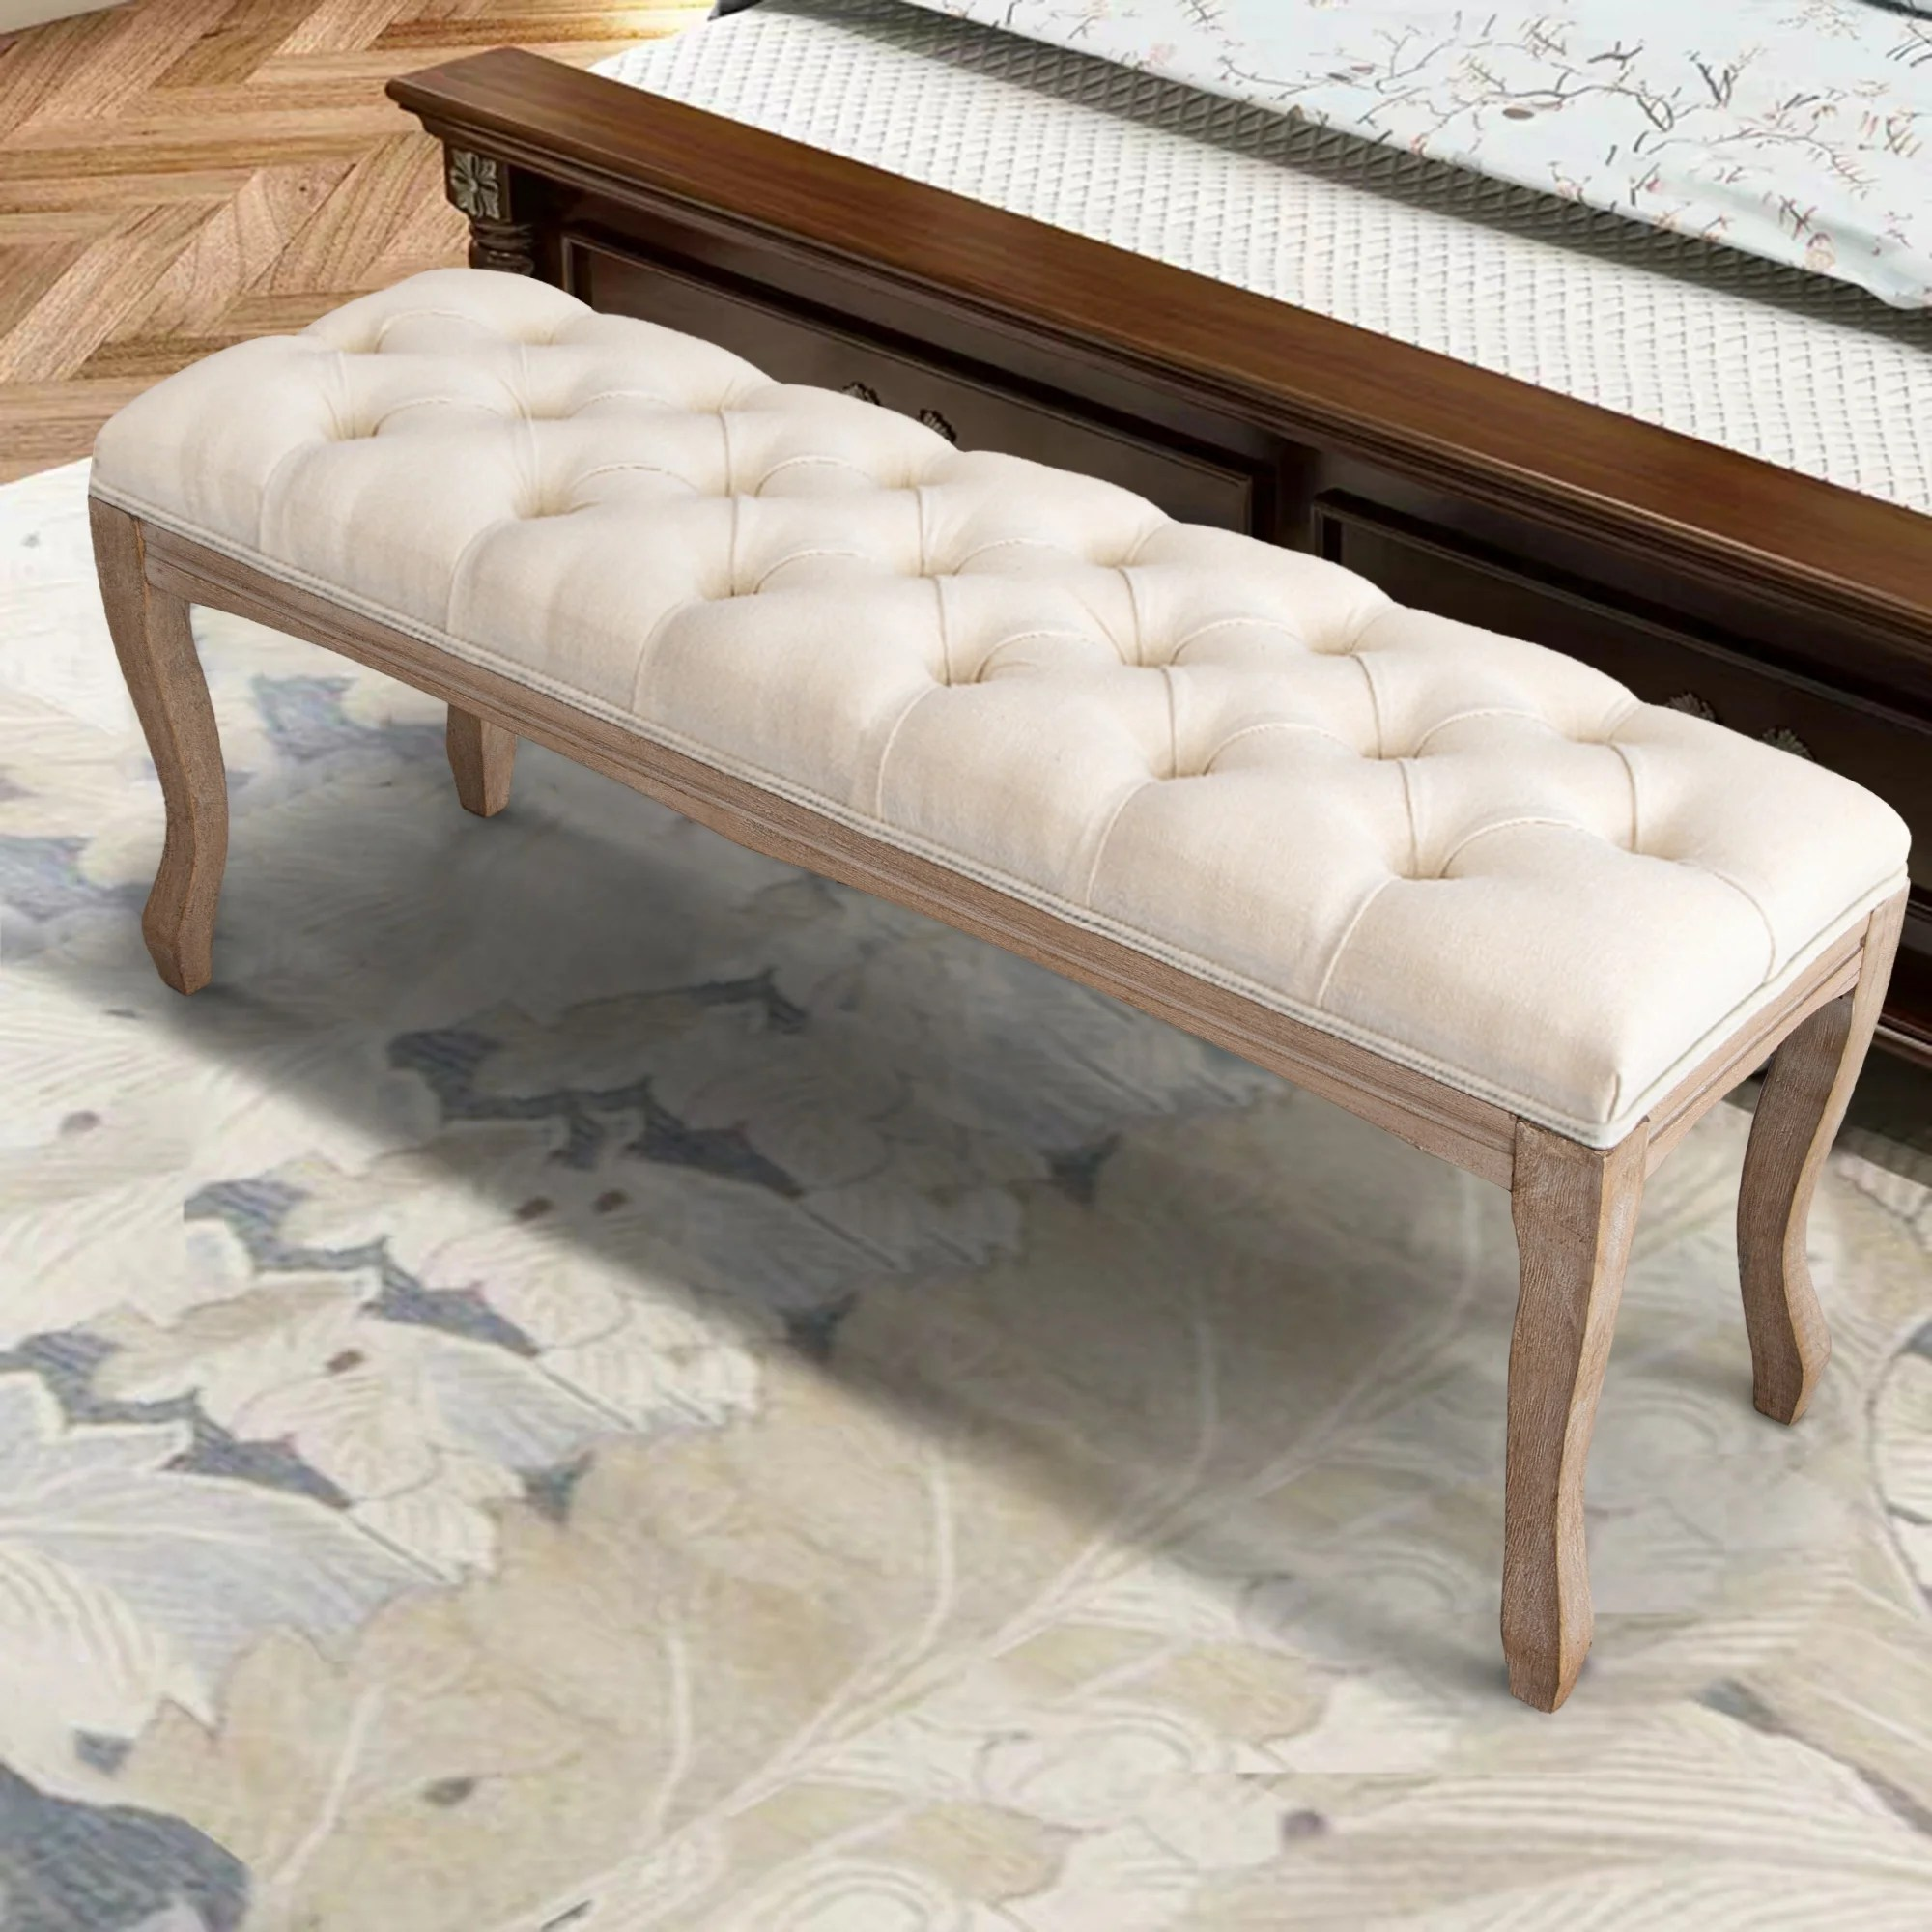 wood bed bench upholstered ottoman tufted bench for bedroom entryway 43 31 l x 14 96 w x 18 90 h